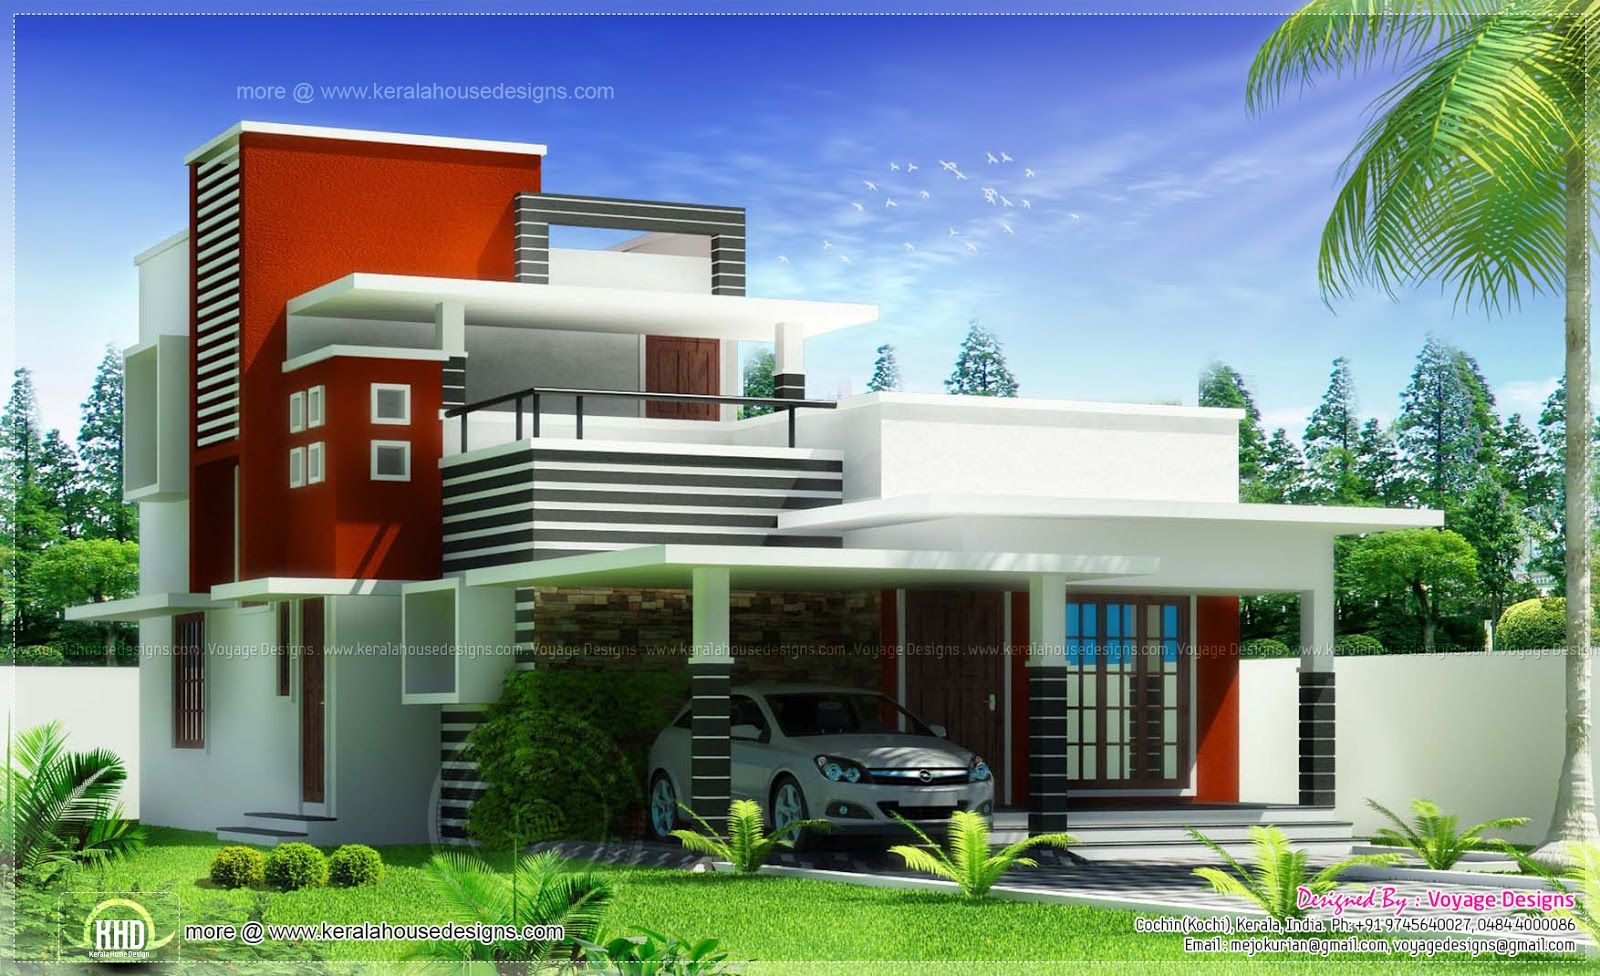 Kerala house designs architecture pinterest kerala for Small home design in kerala